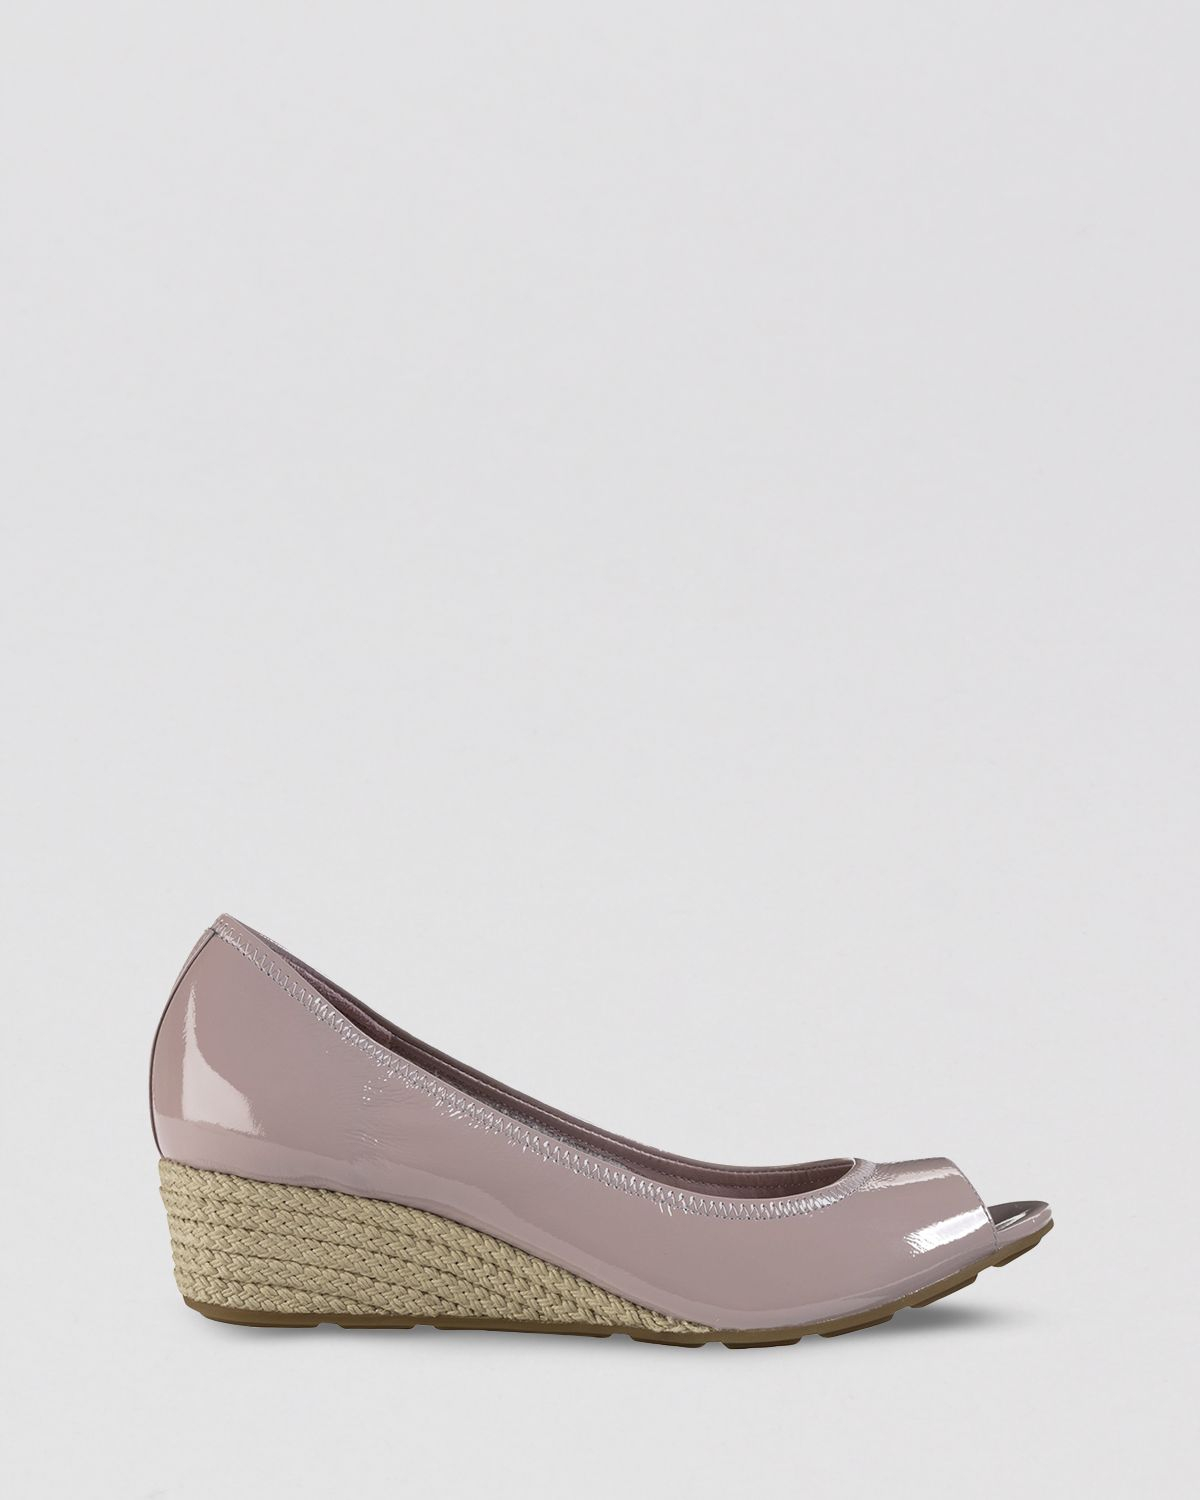 568a40a92027 Lyst - Cole Haan Open Toe Wedge Pumps Air Tali in Gray